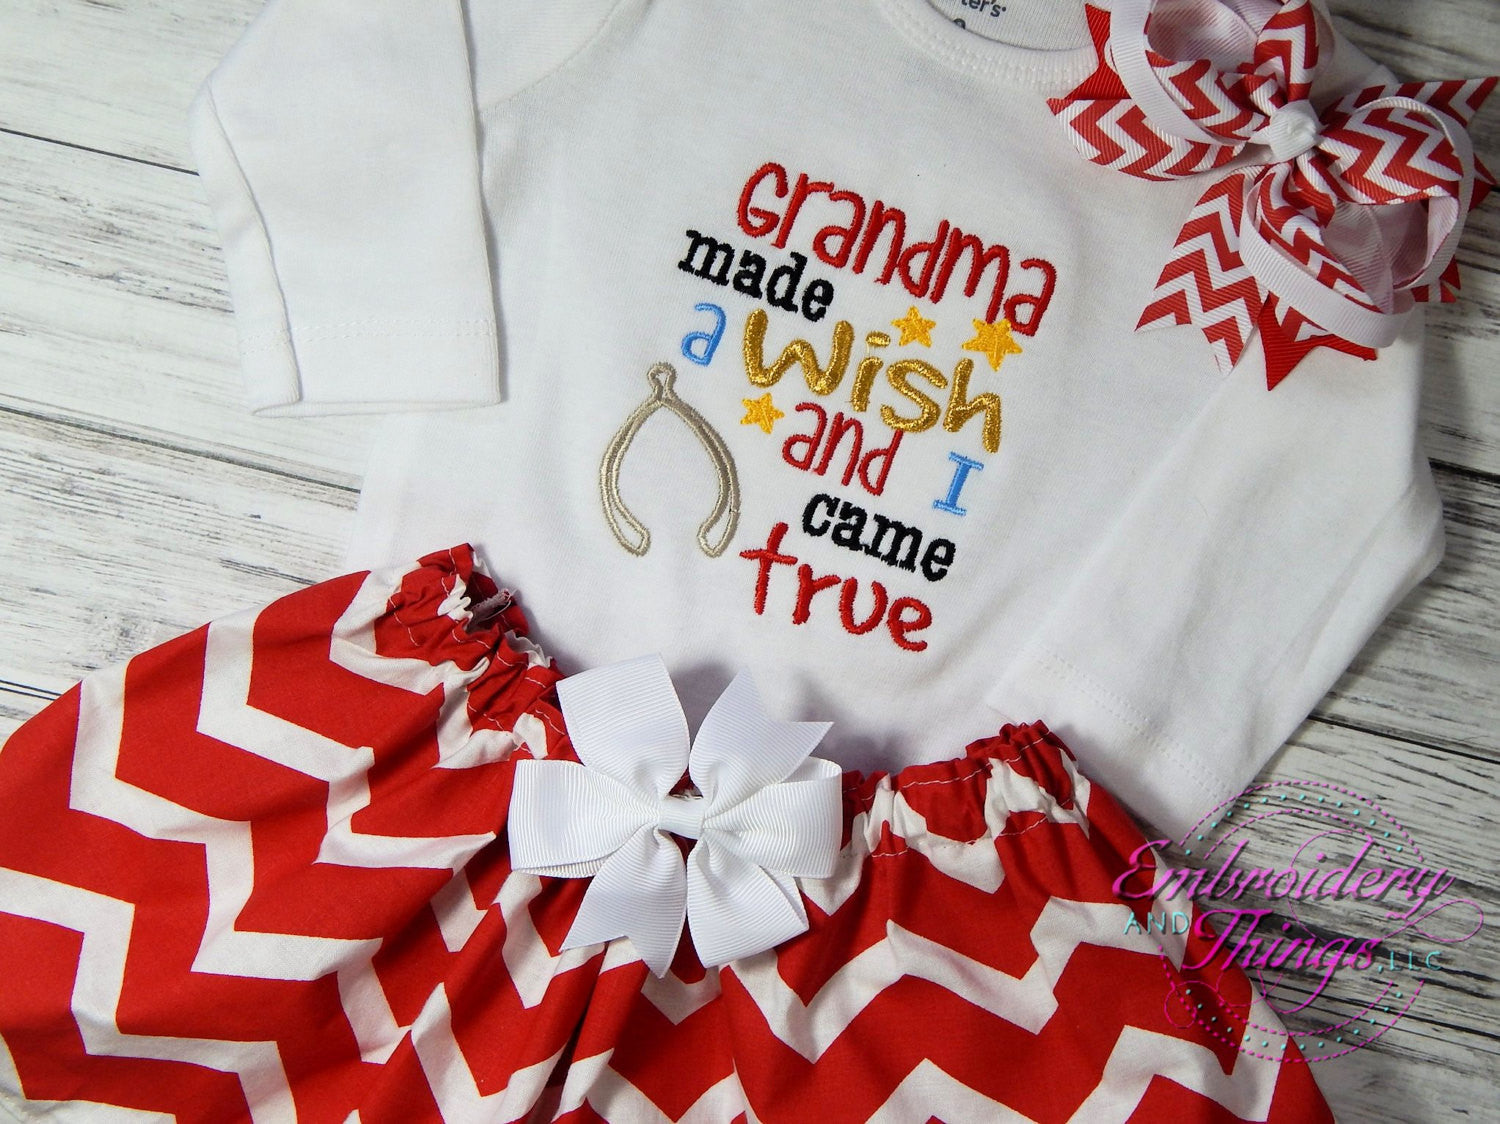 baby girls' clothing, grandma made a wish and i came true, baby, Baby shower